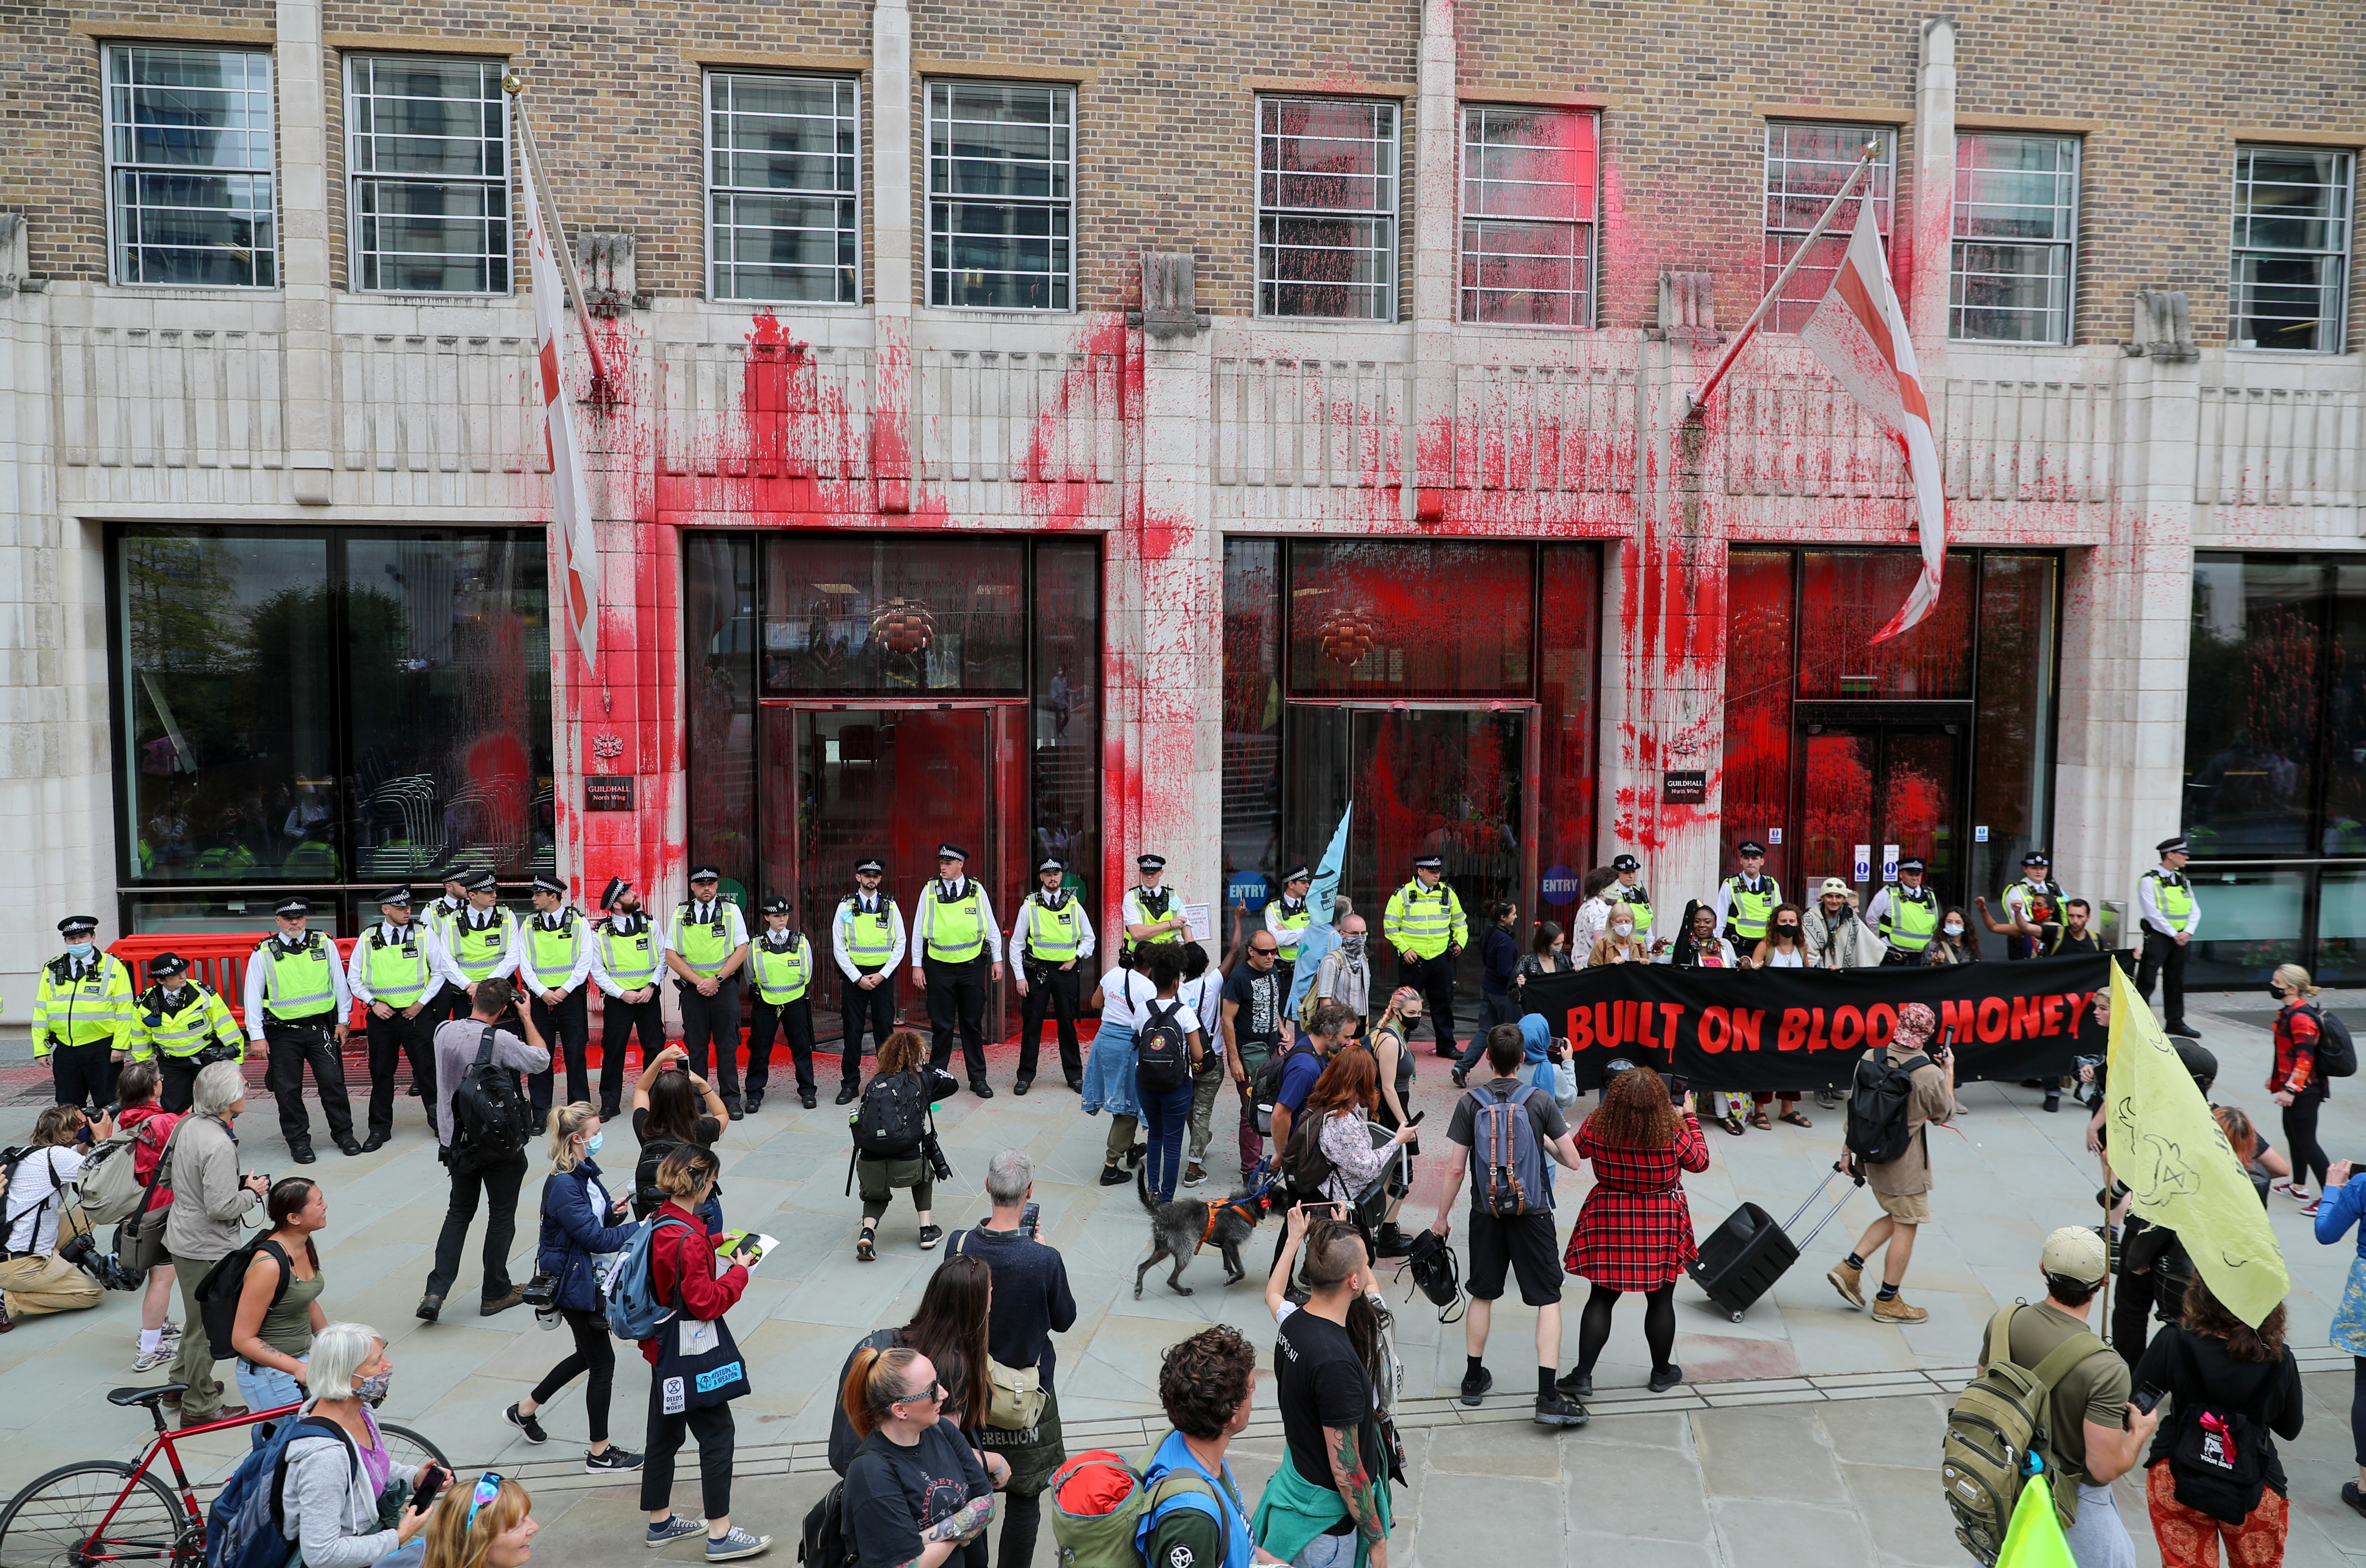 Climate activists deface City of London buildings in intensifying campaign